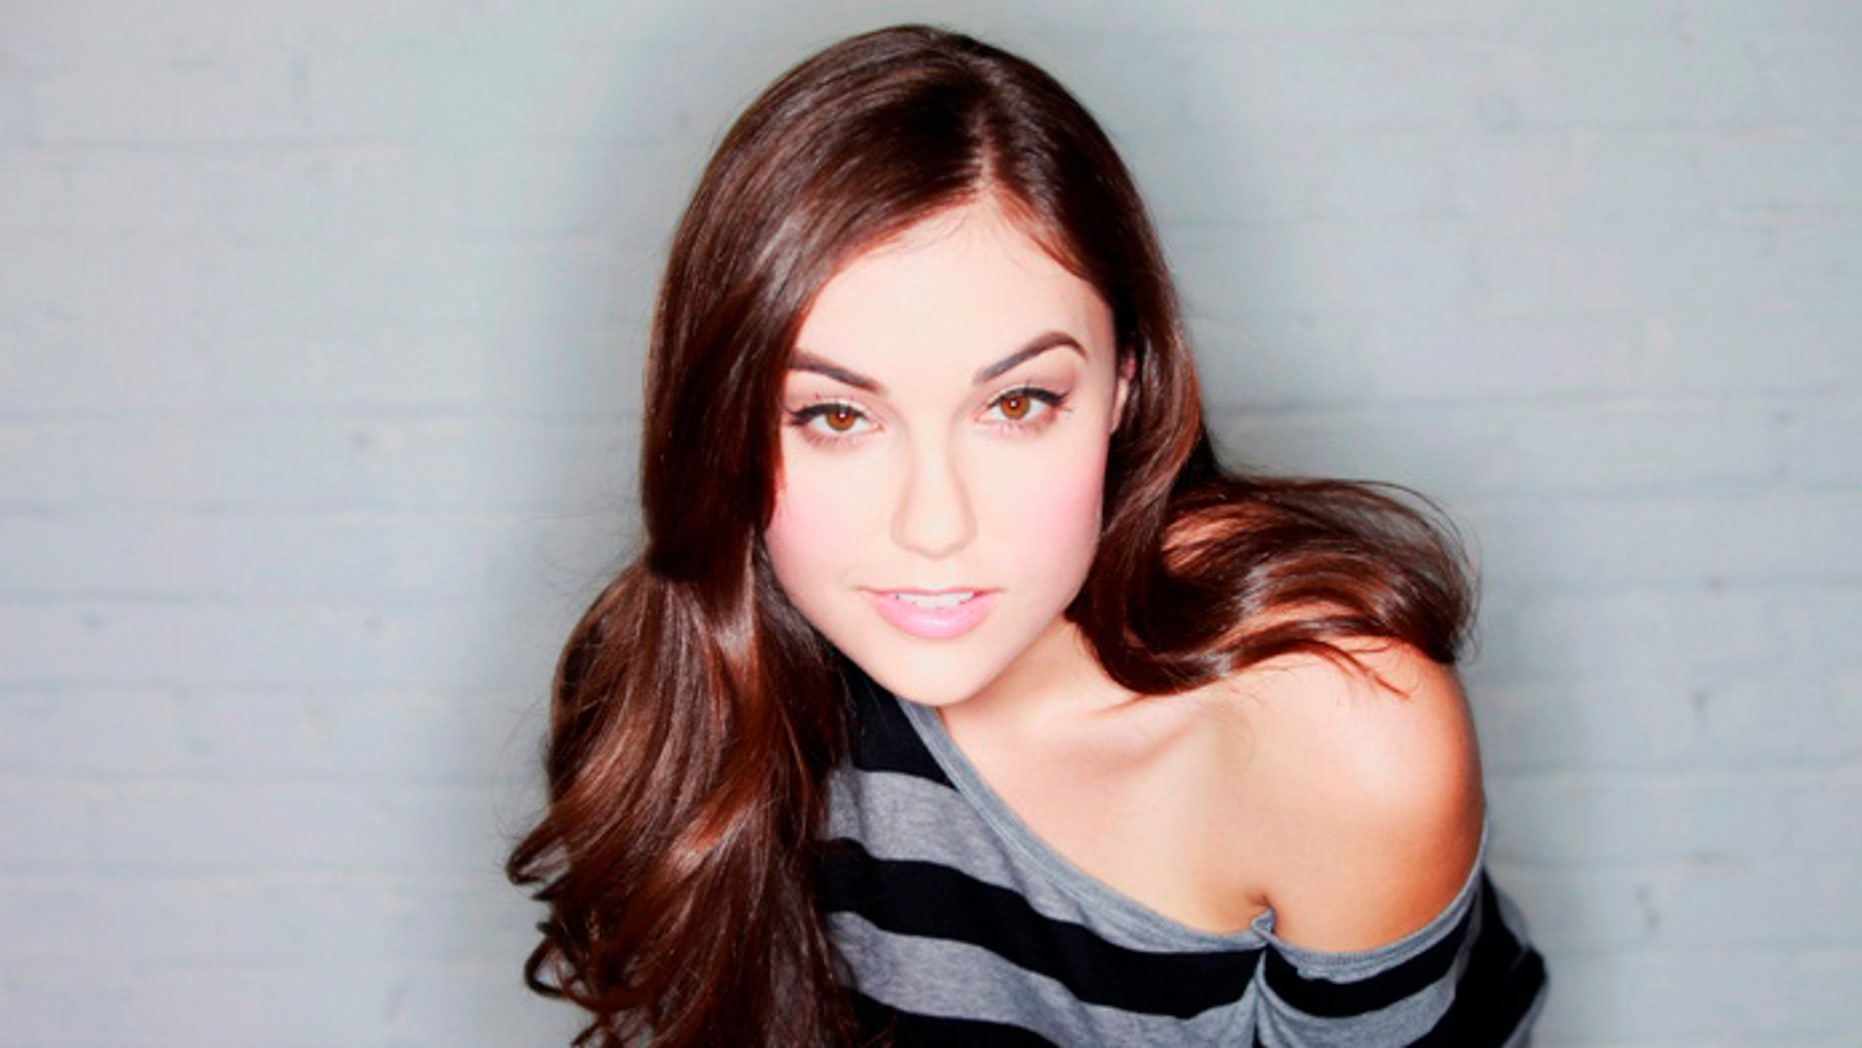 Sasha Grey Porn Interracial - Sasha grey back in porn Erotoc Pics – Innovativedistricts